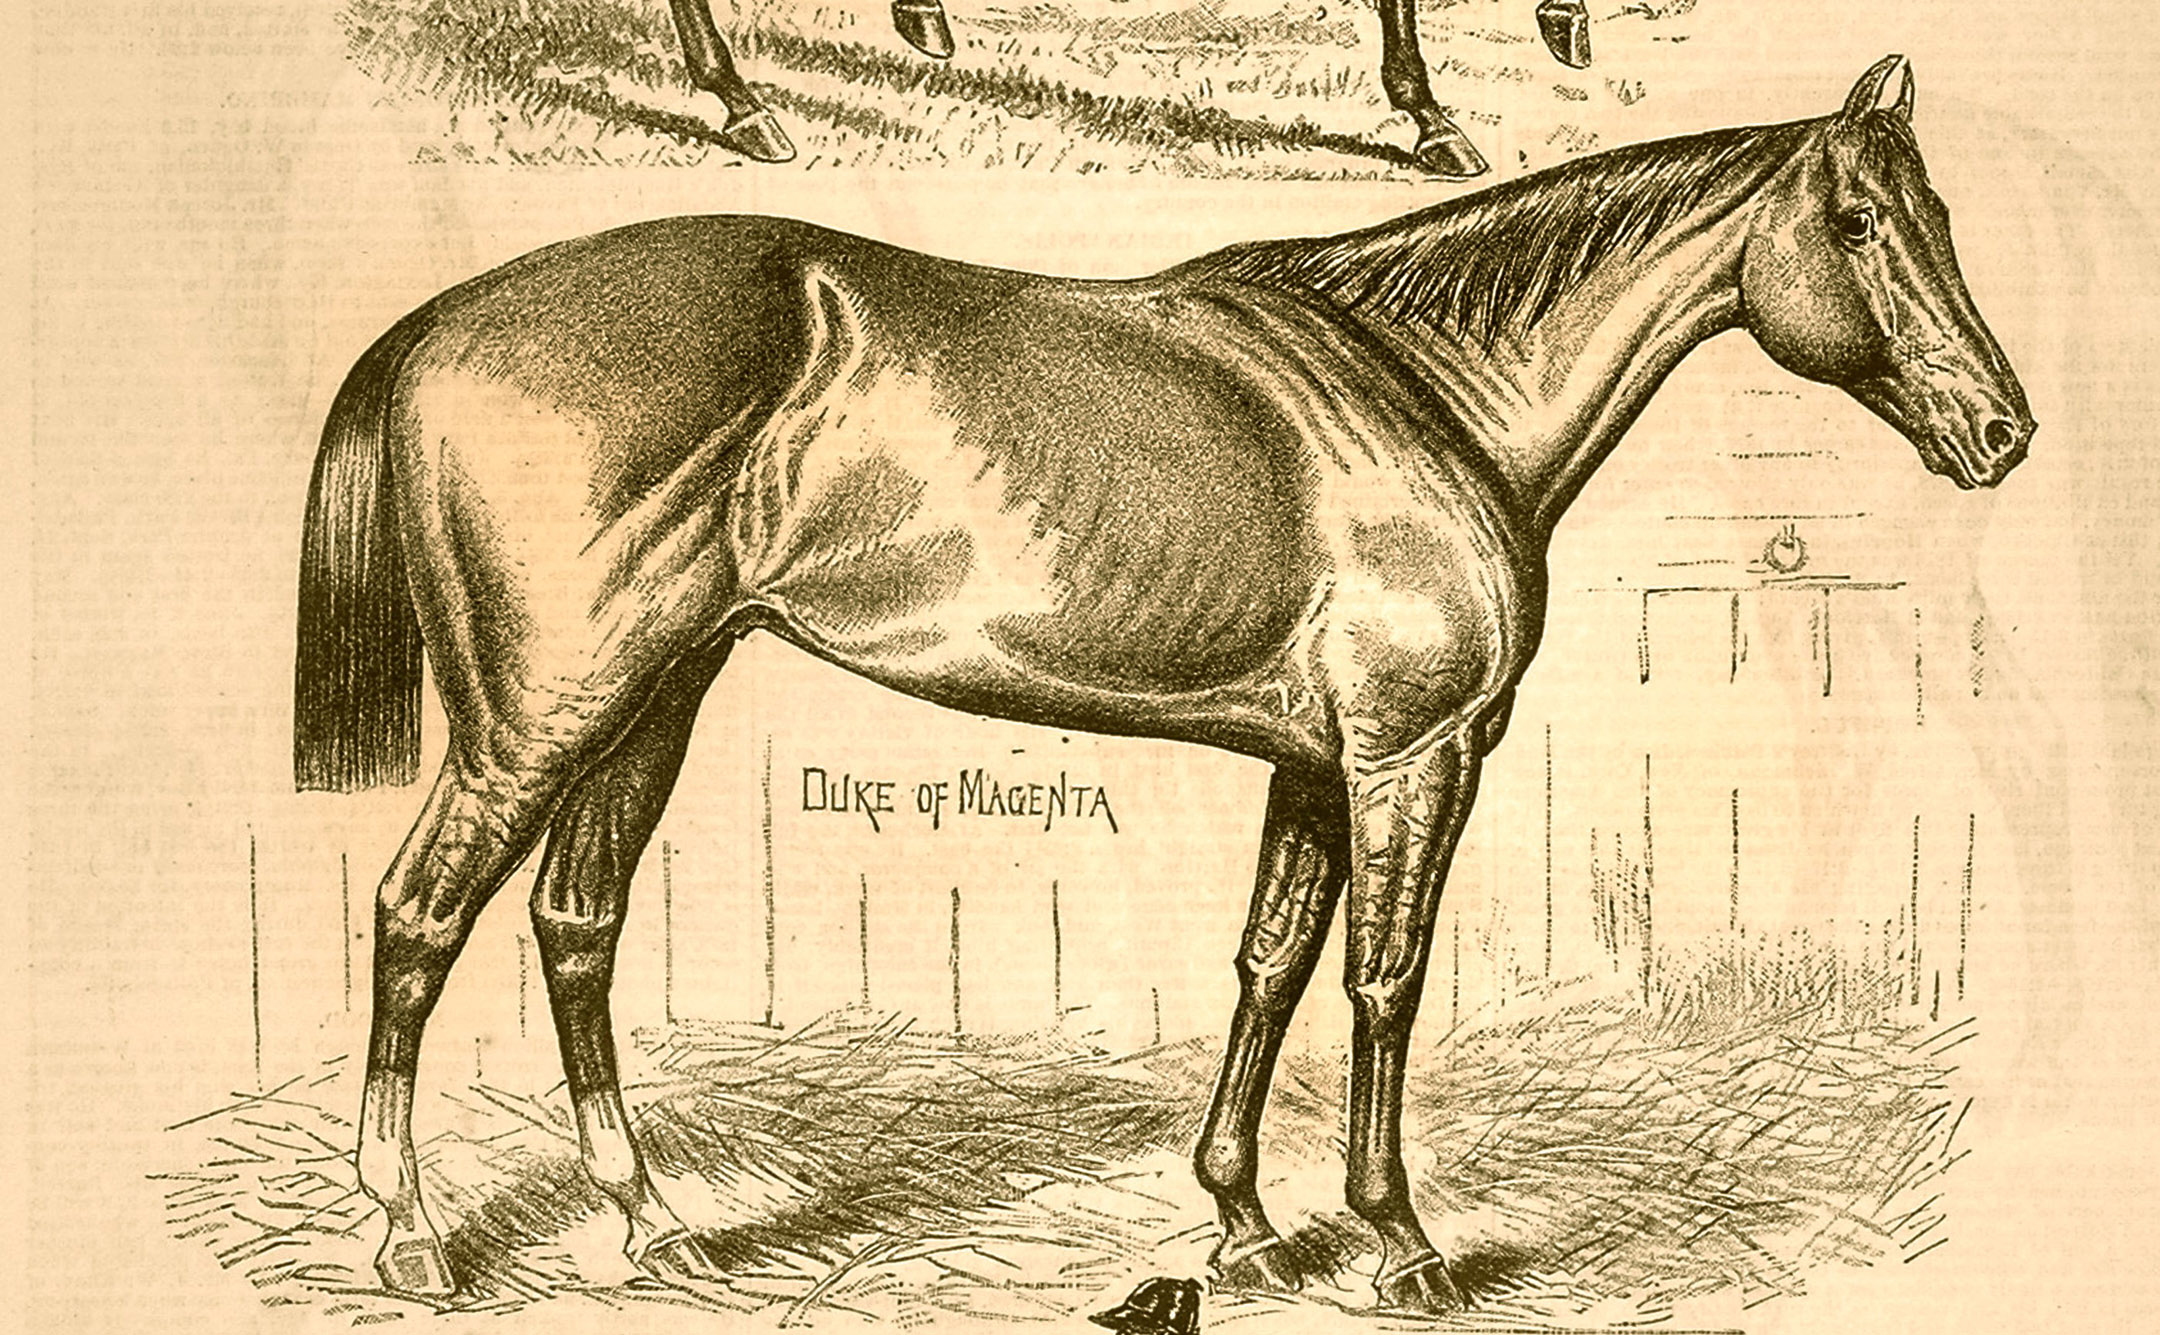 """A likeness of Duke of Magenta from the """"Spirit of the Times"""" (Keeneland Library Collection)"""